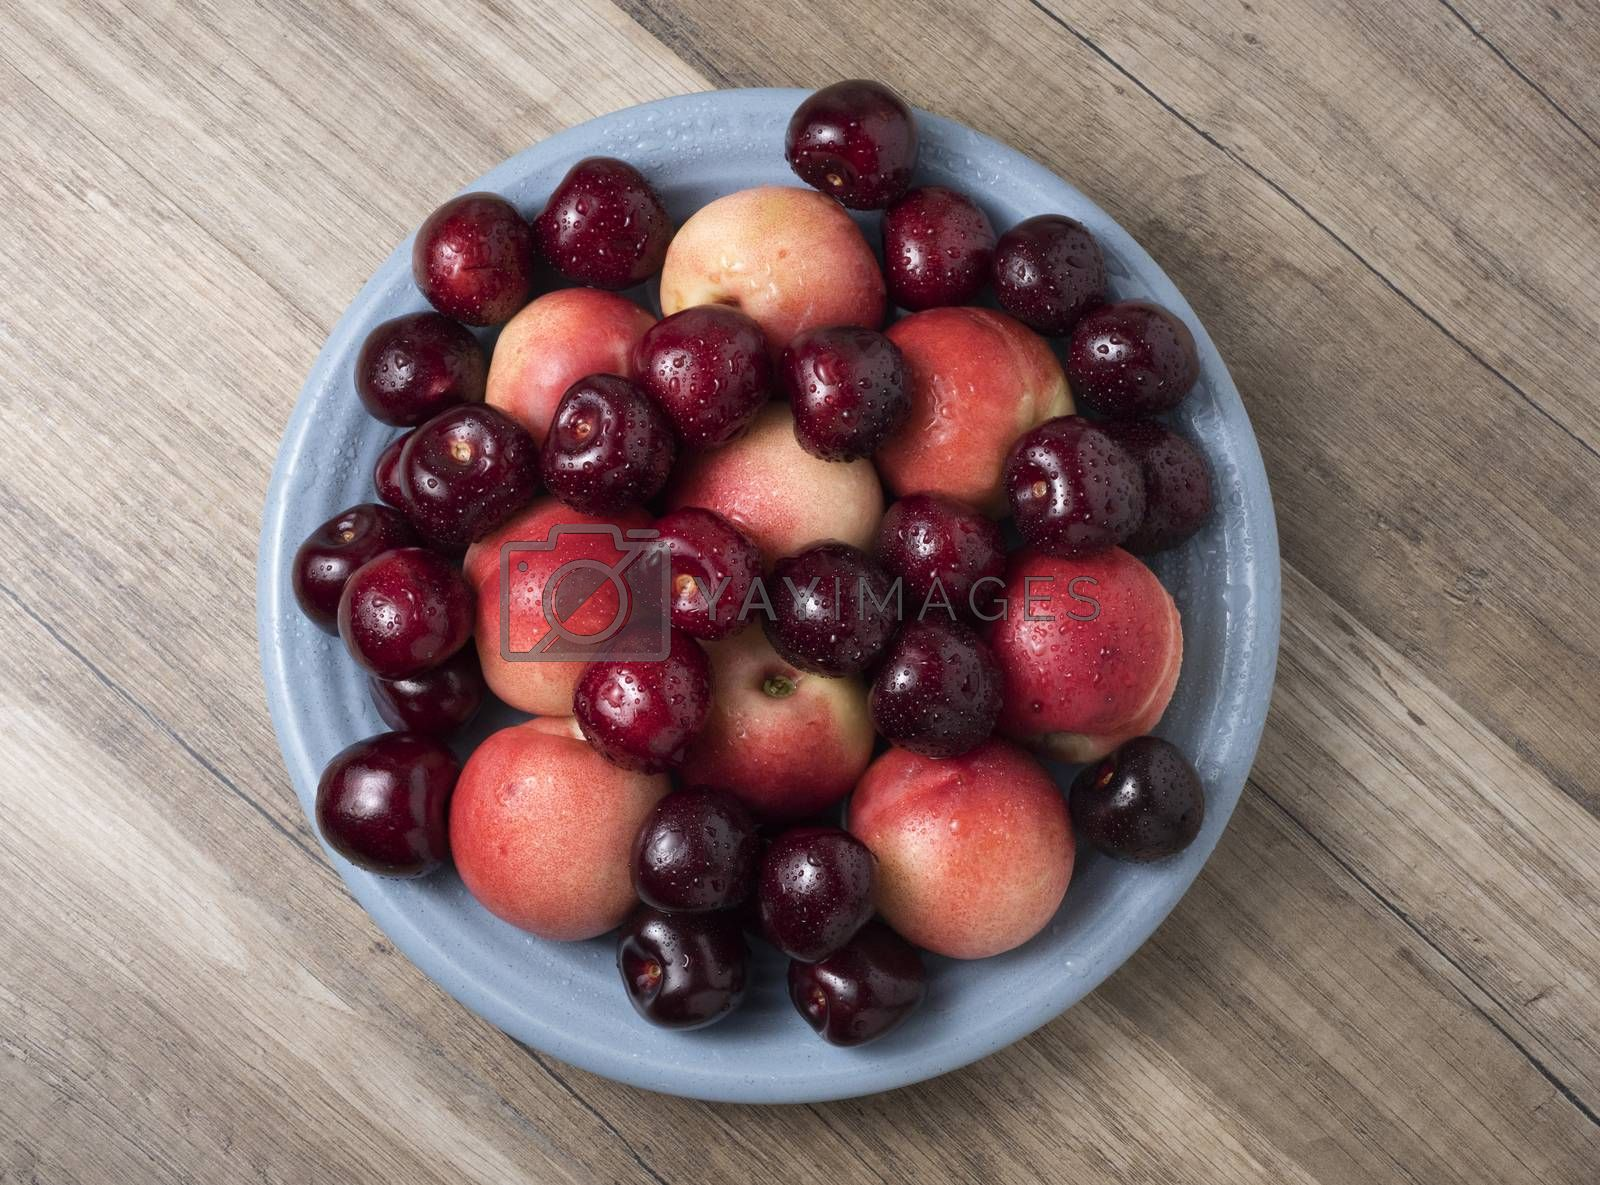 Royalty free image of Sweet cherries and ripe juicy nectarines in a dish, on wooden ba by phortcach